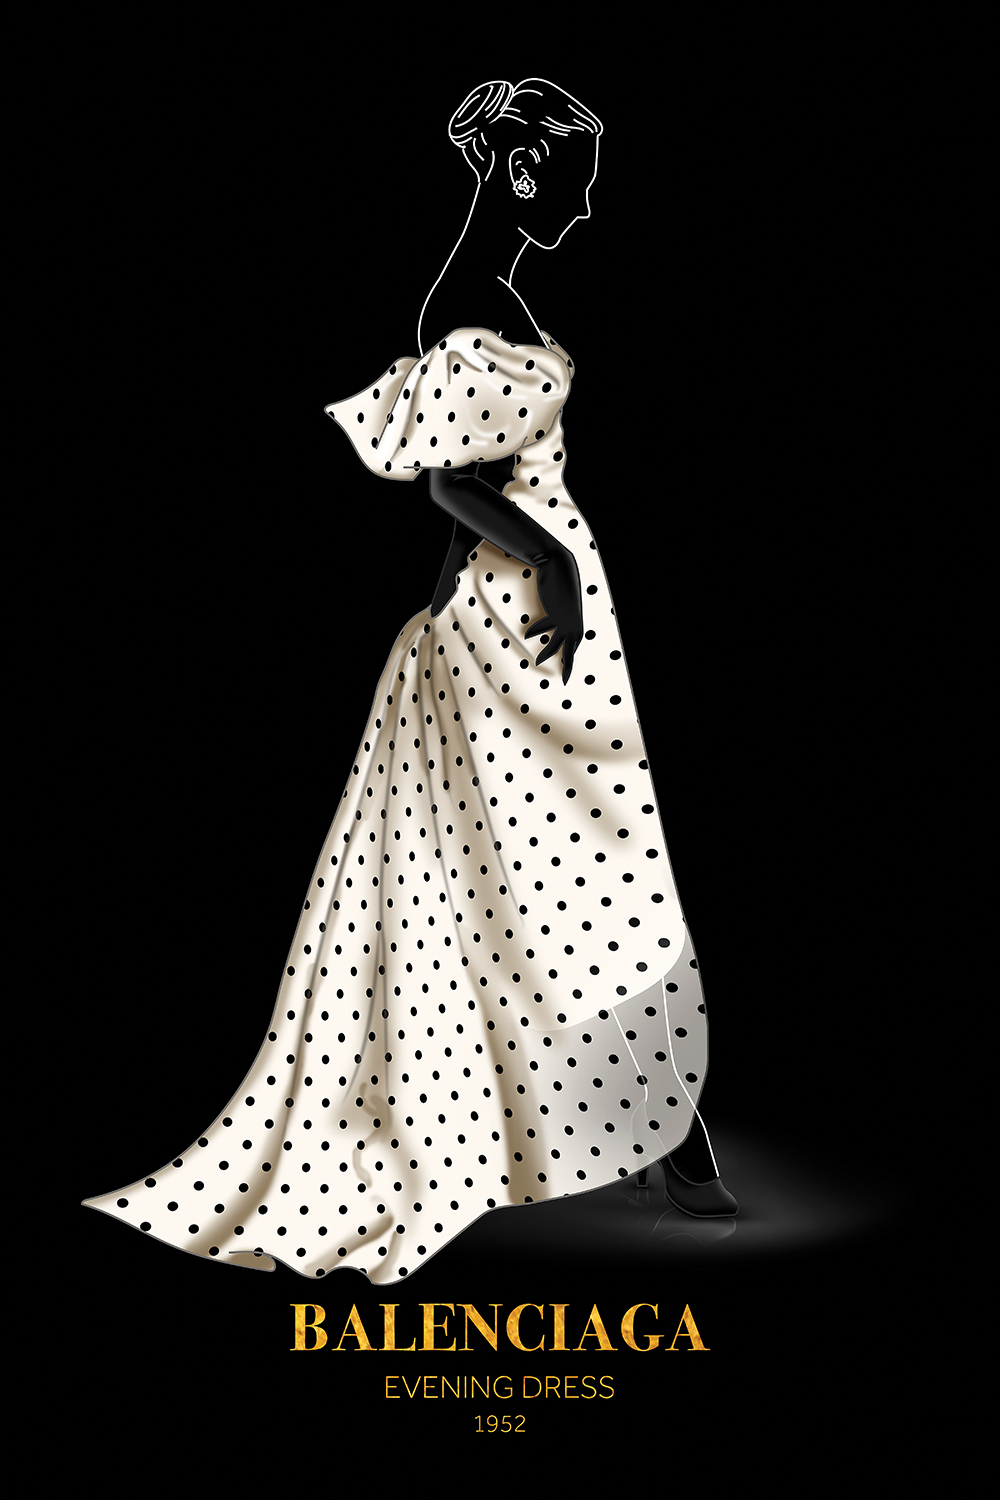 Illustration of a woman wearing a white polka dot Balenciaga gown on a black background